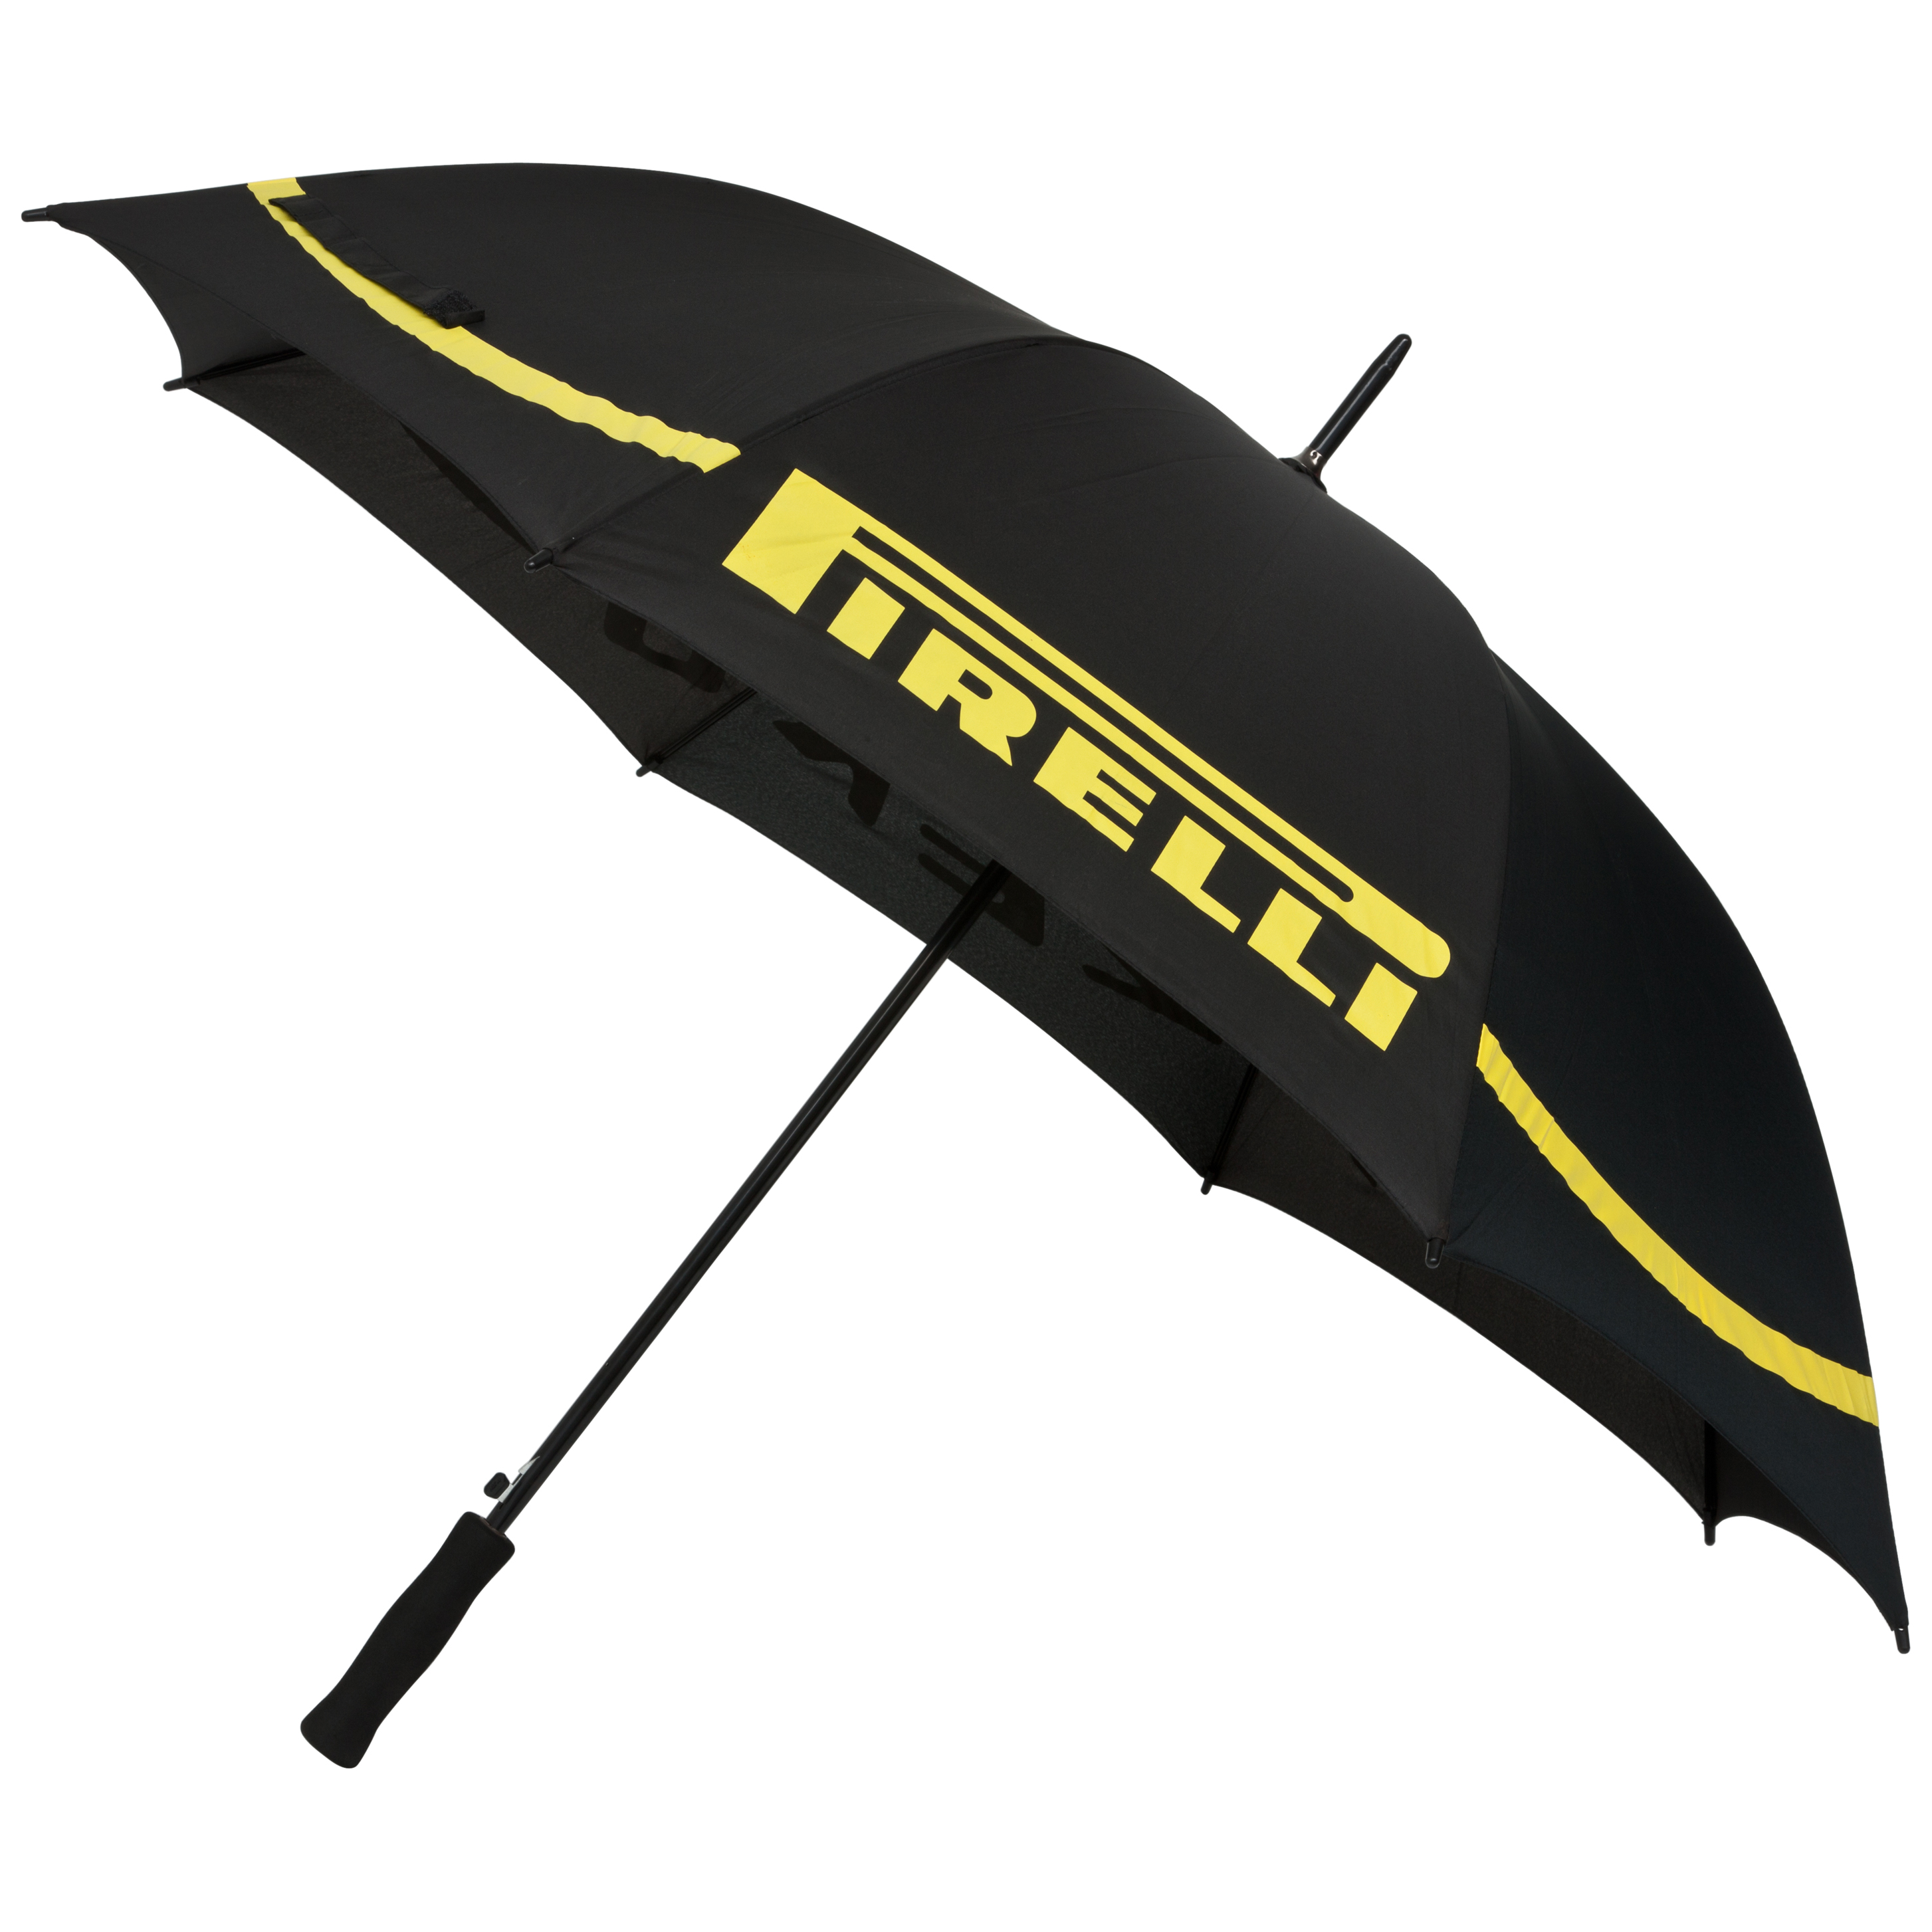 Pirelli Pzero Umbrella